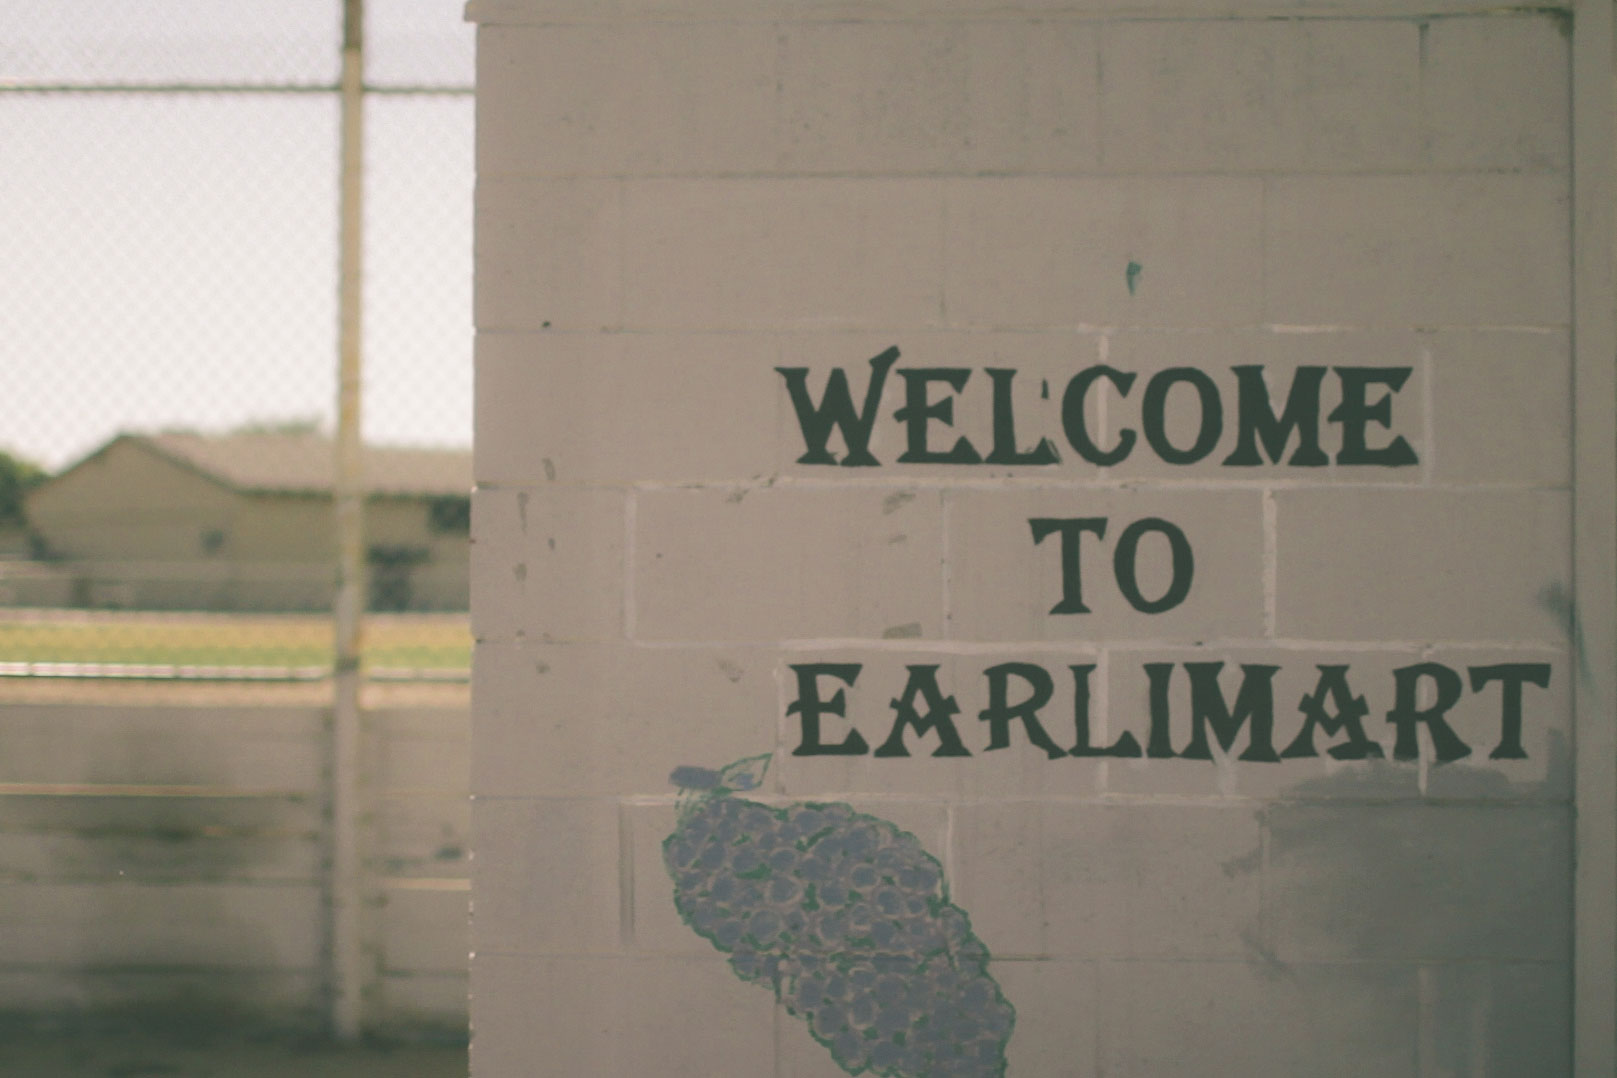 Earlimart